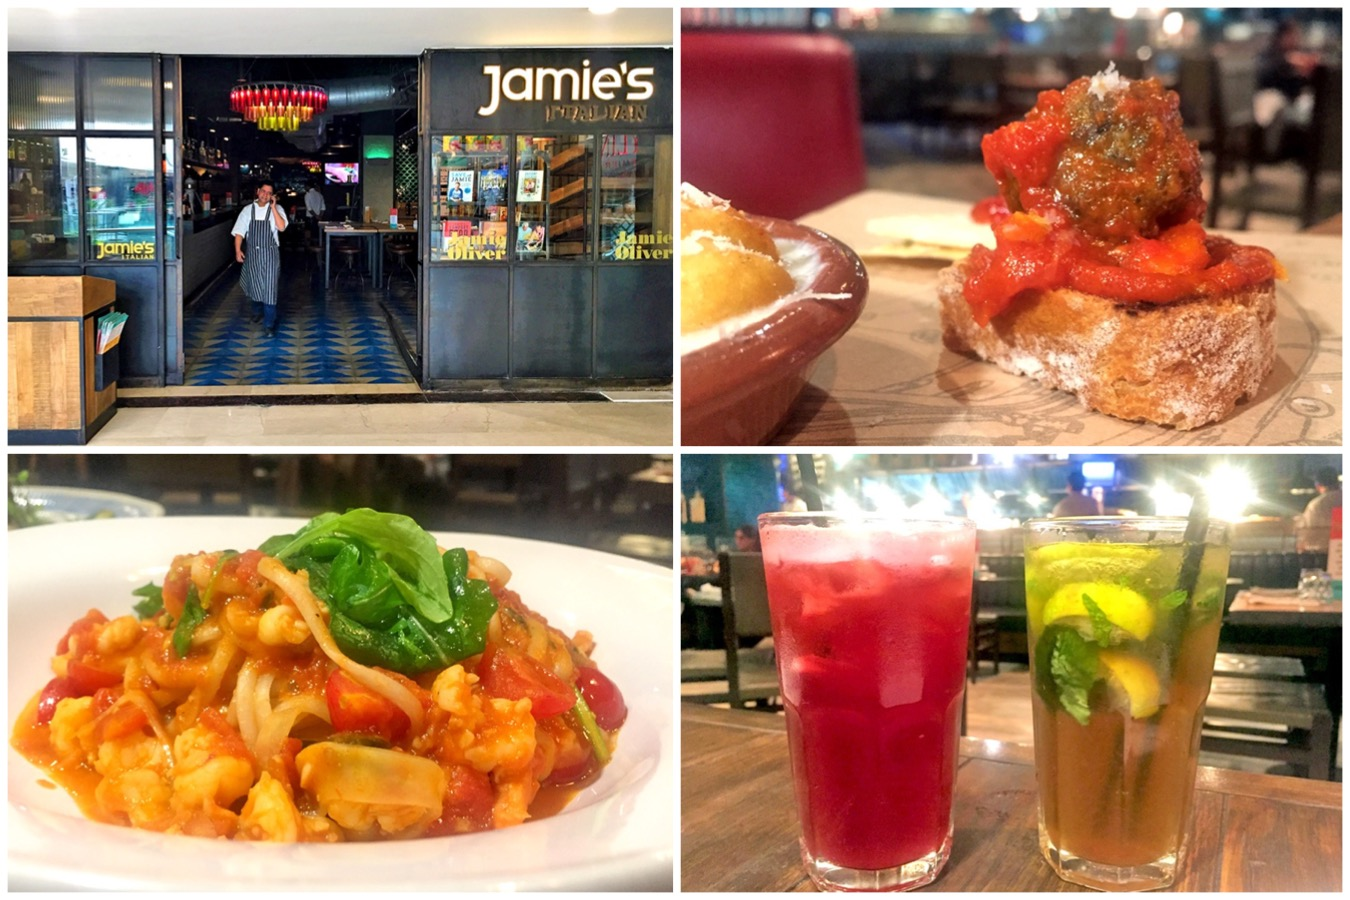 Jamie's Italian New Delhi - Celebrity Chef Brand With Classic Italian Cuisine, At Ambience Mall